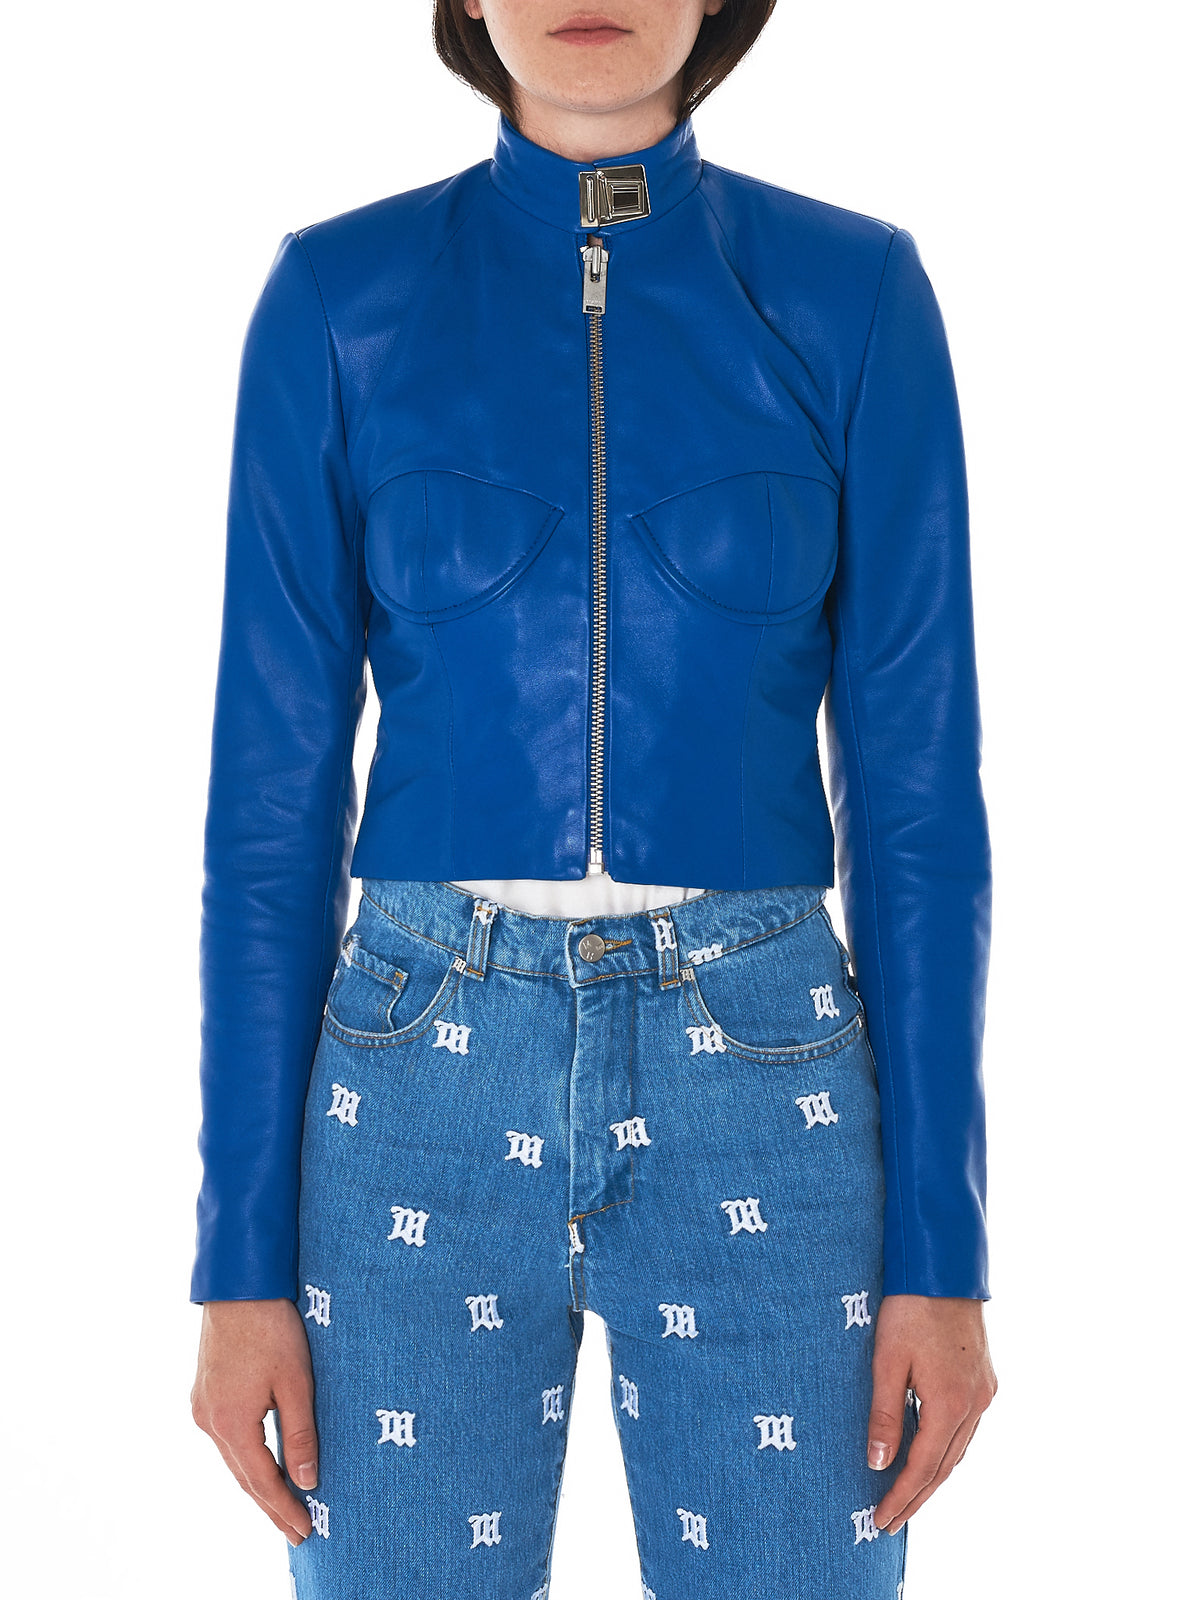 MISBHV blue leather jacket- H.Lorenzo front